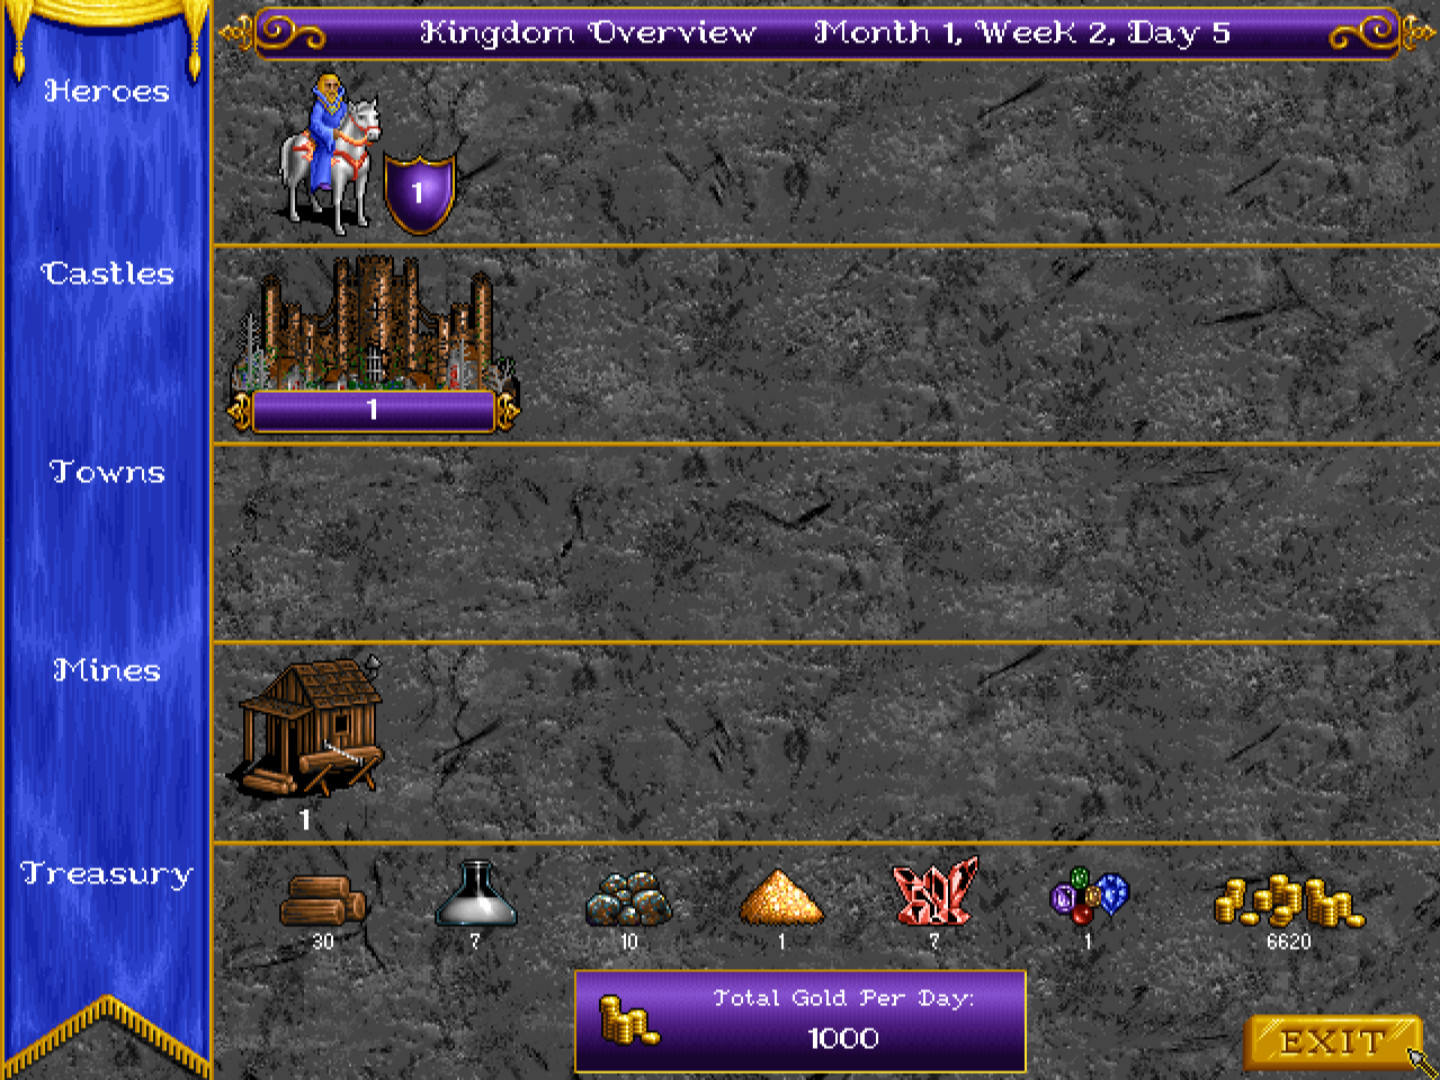 The Heroes of Might and Magic I kingdom overview gives an overview of your economy.